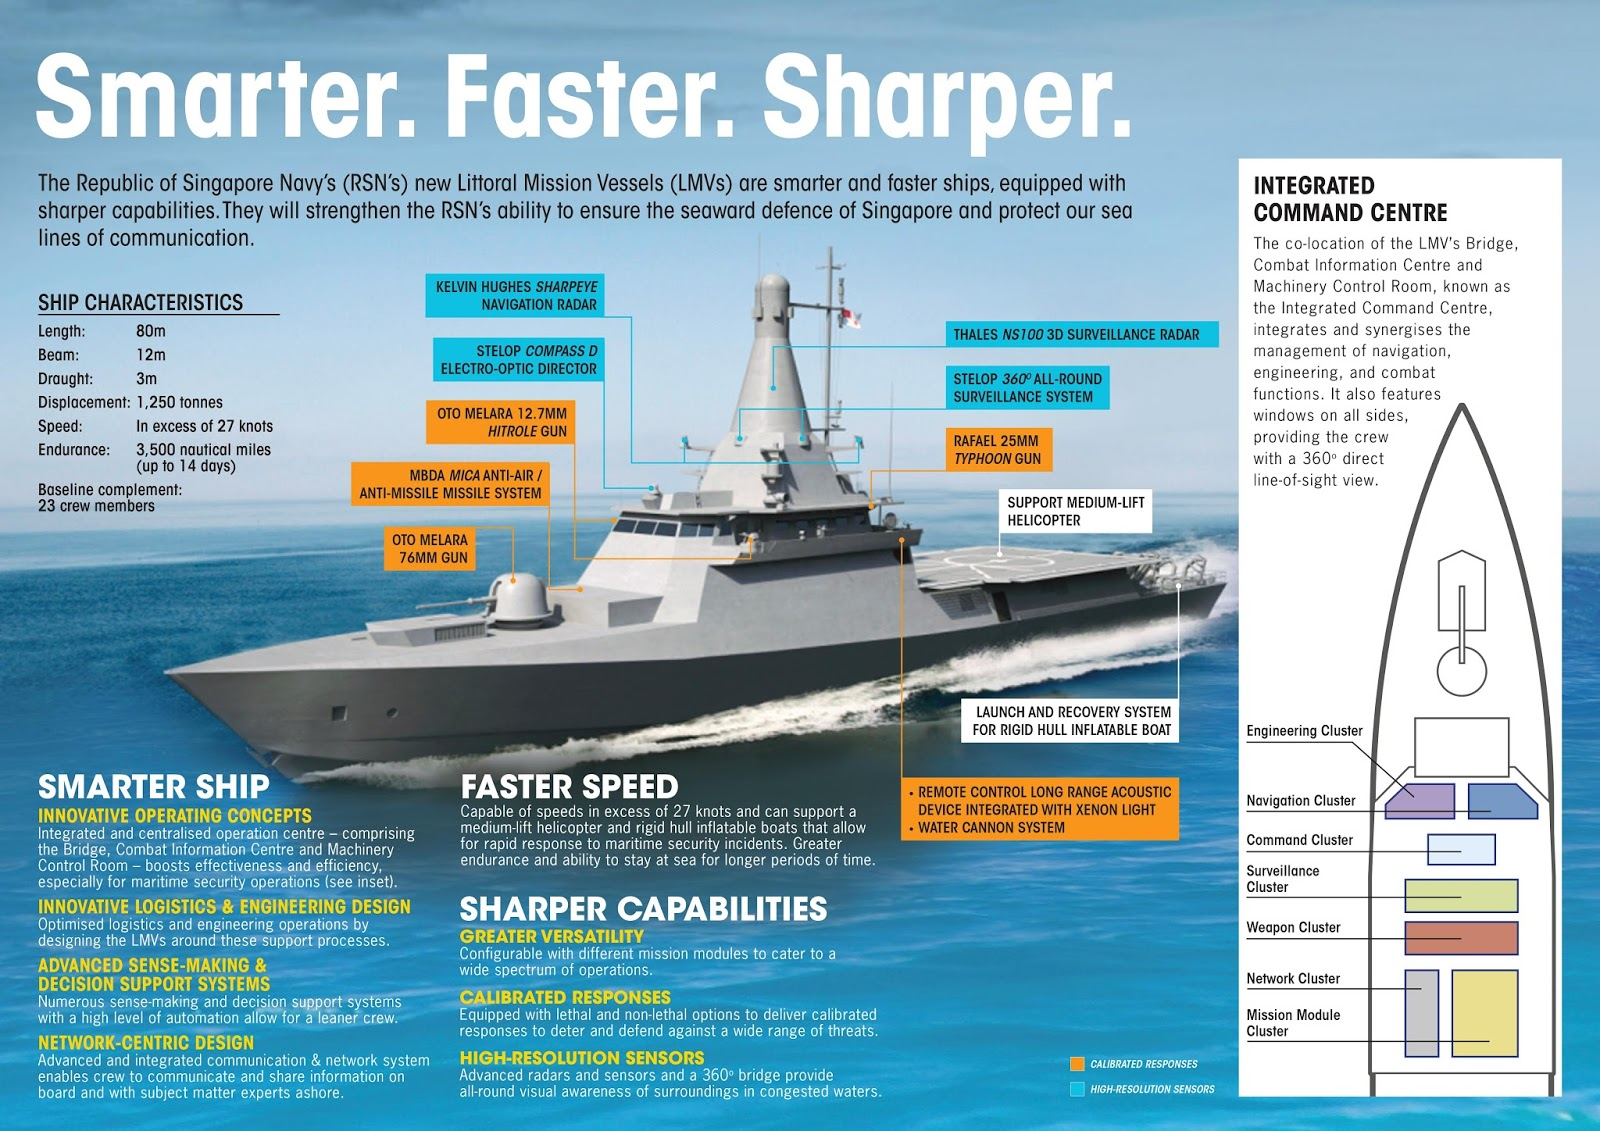 Comparing The Air Surface Search Radar Options For The